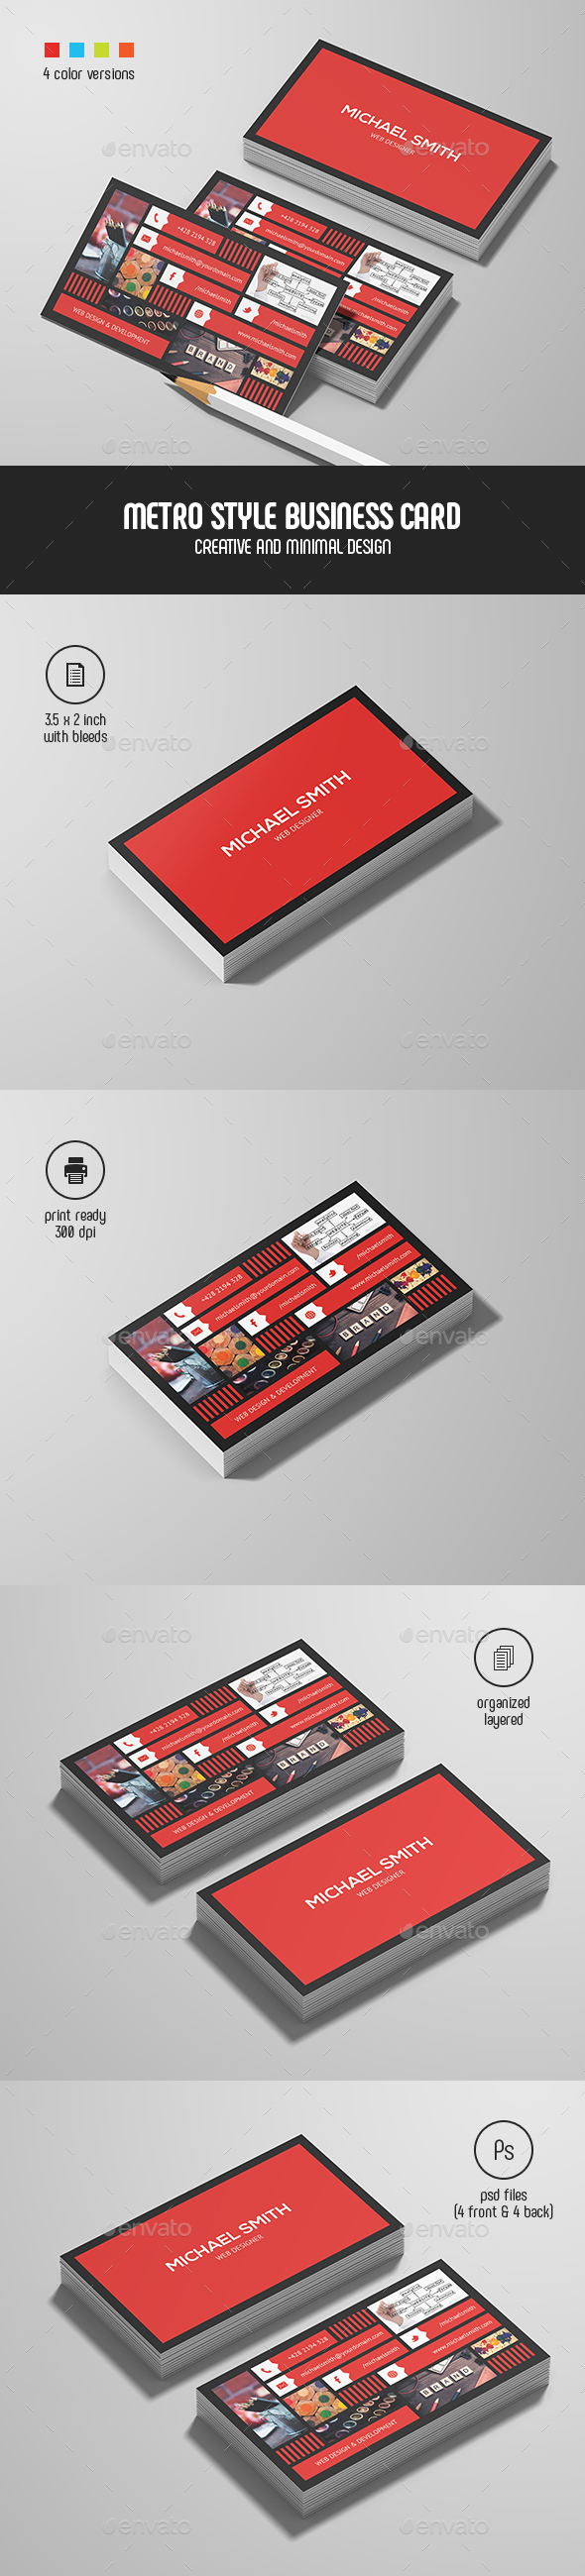 Metro Style Business Card - Creative Business Cards